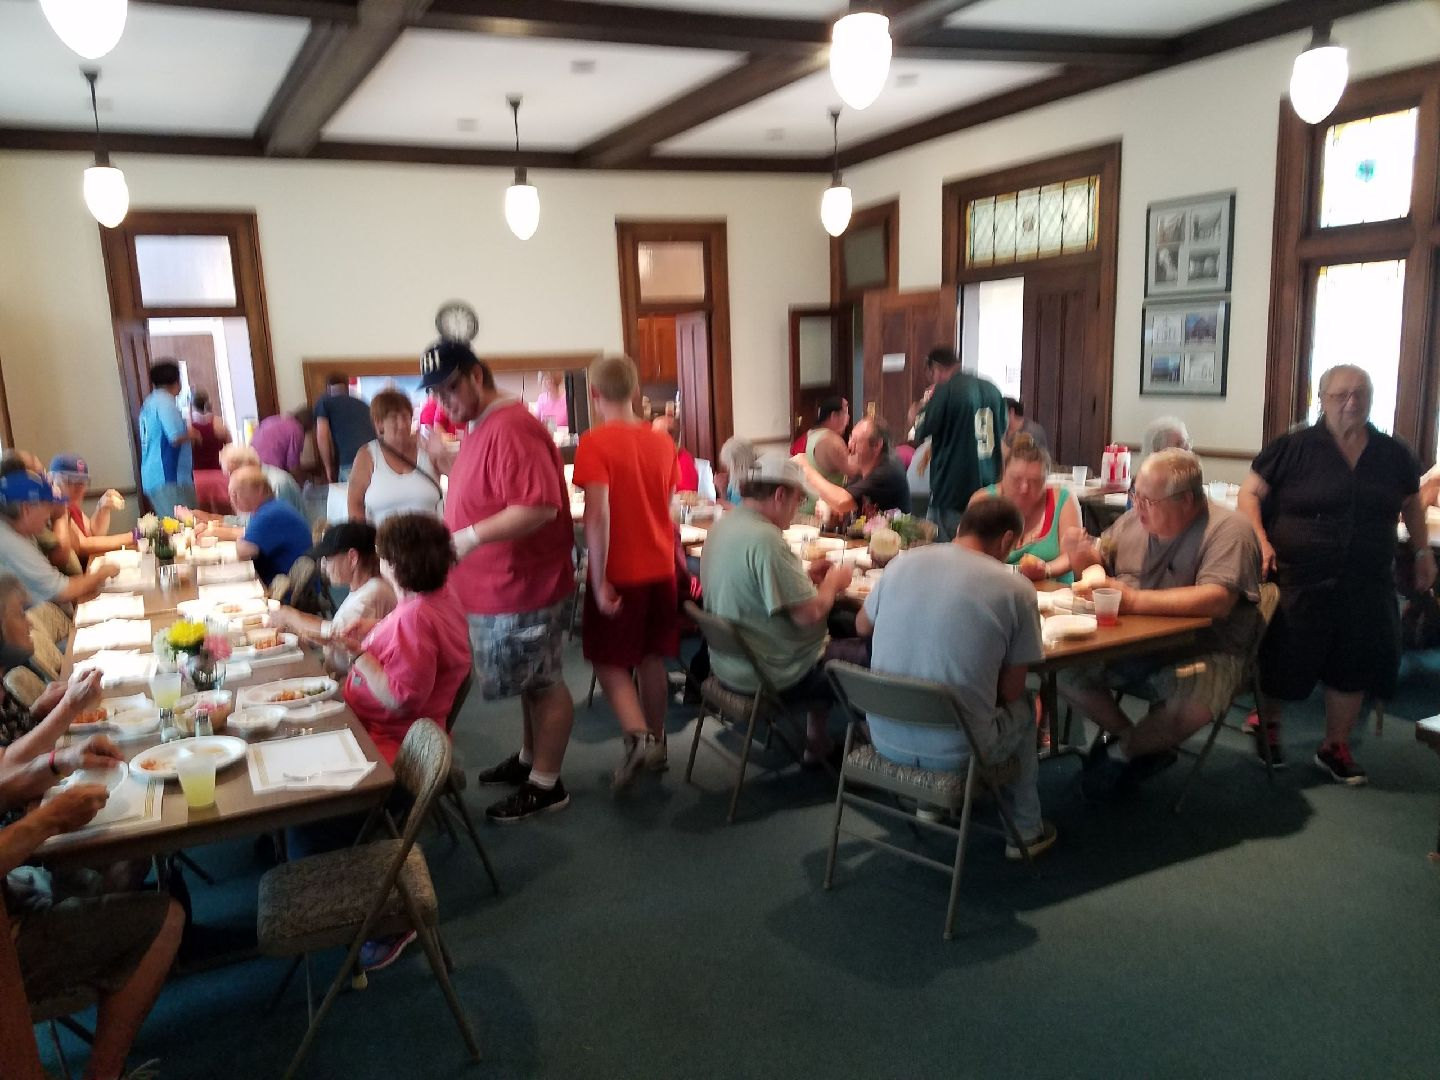 Loaves and Fishes at Trinity Episcopal Church Logansport, Indiana